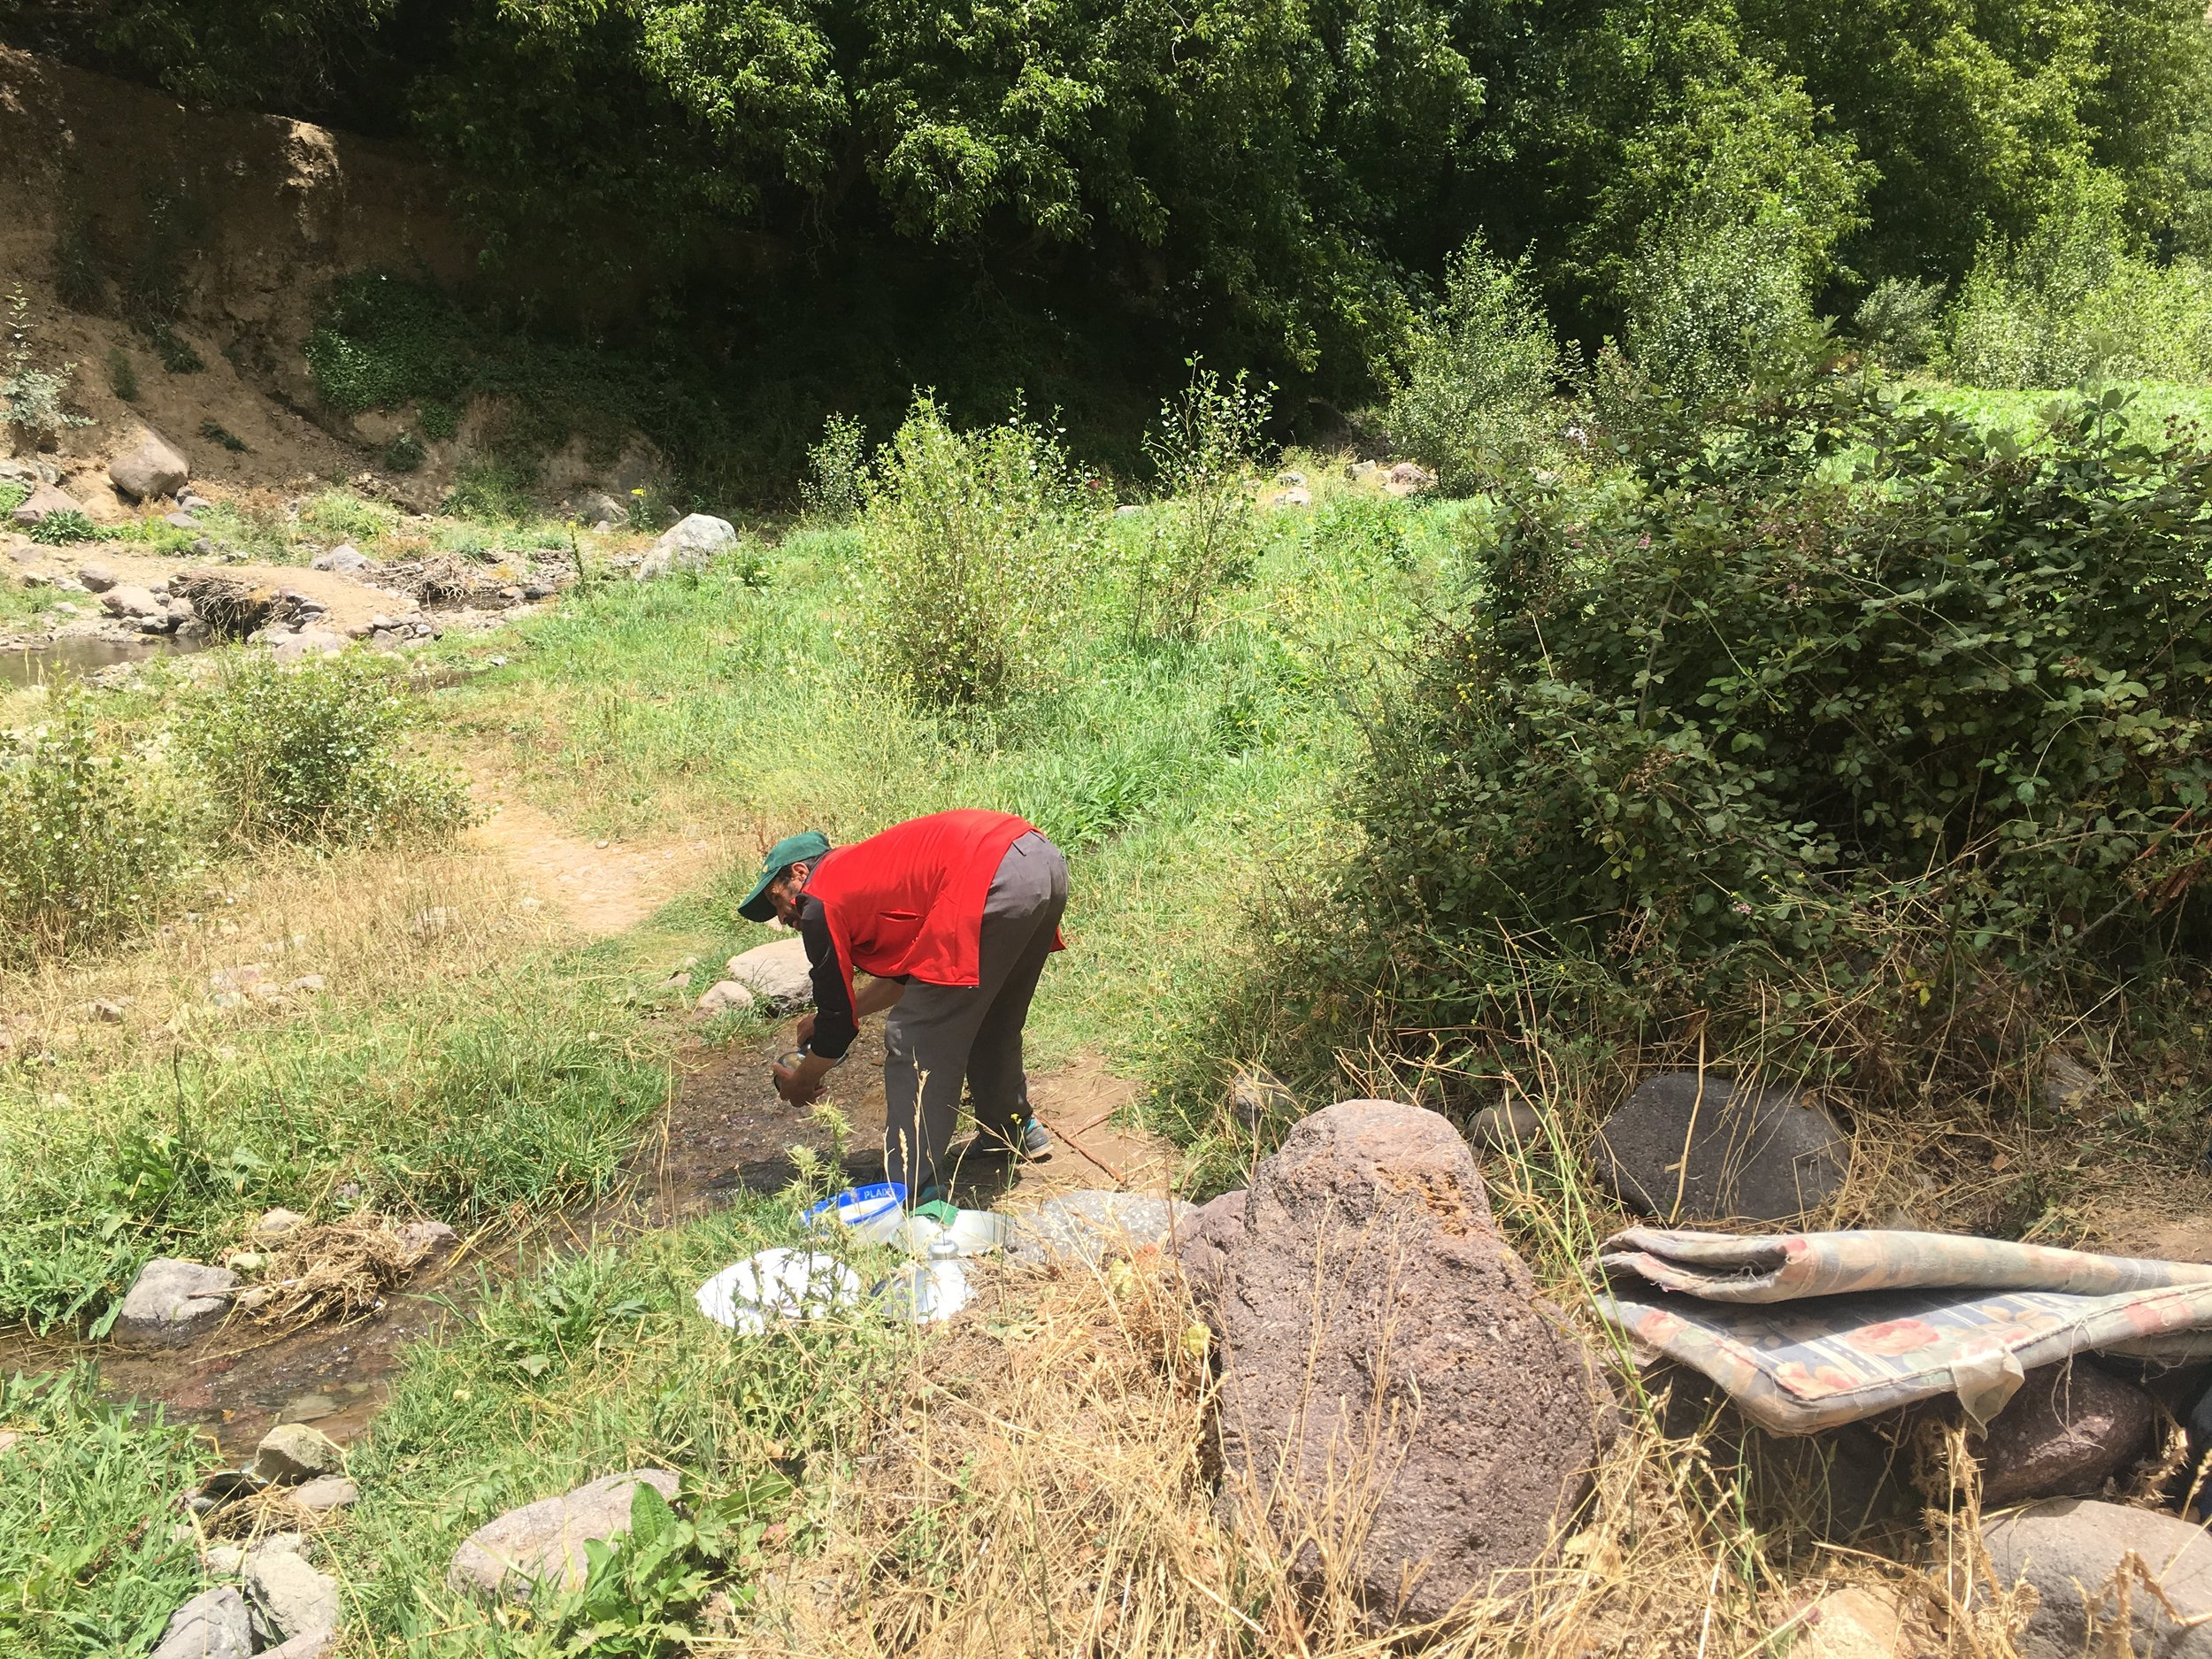 Abdil washes dishes in the river in his signature green baseball cap.